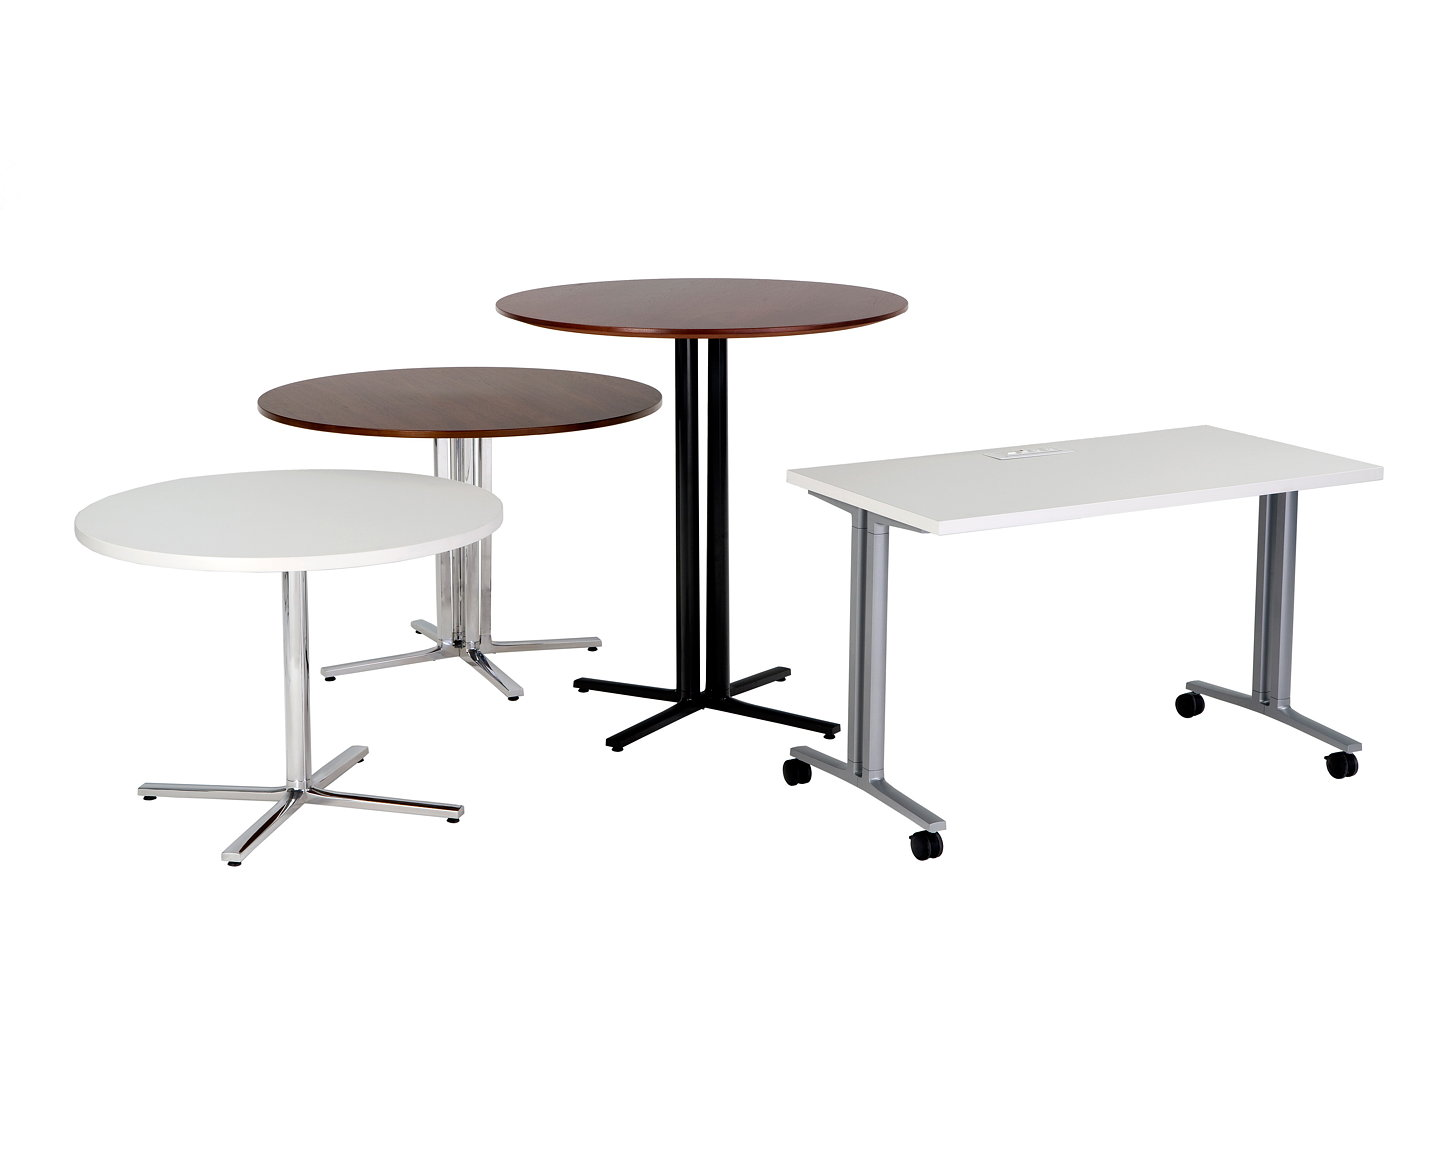 herman miller introduces everywhere tables - herman miller everywhere tables